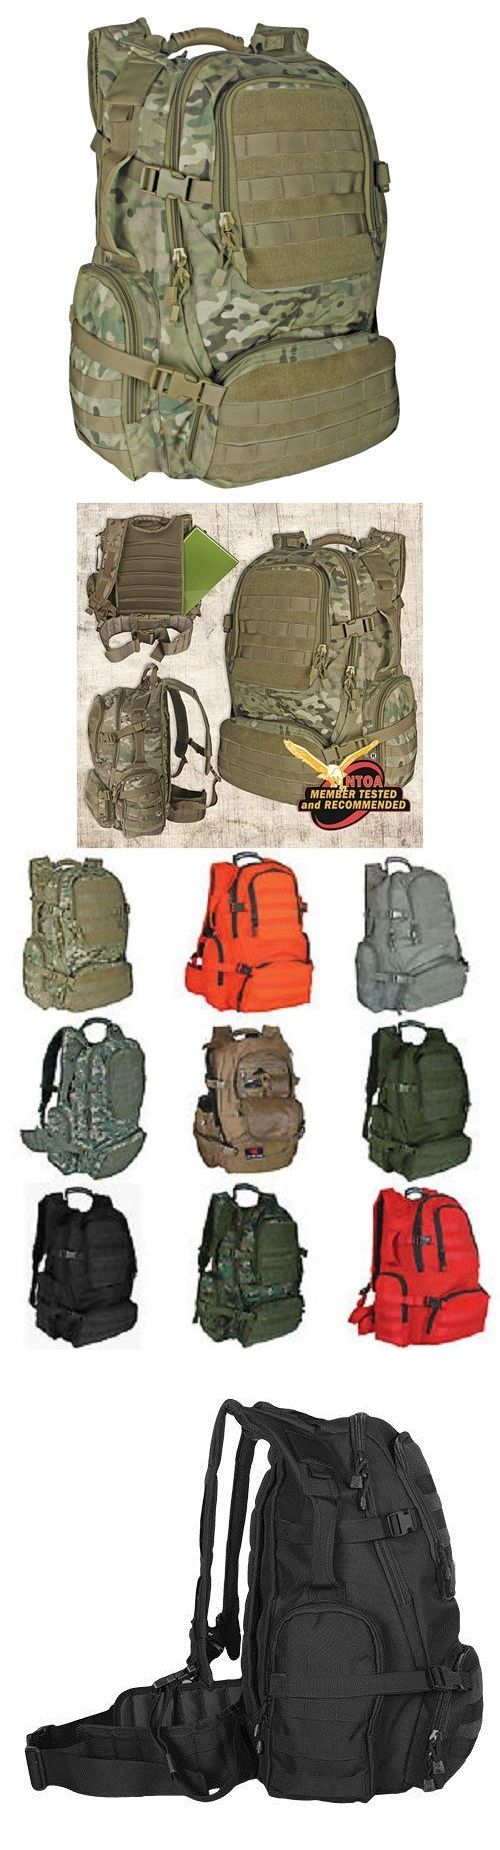 Day Packs 87122: New - Military Tactical Field Operator S Molle Backpack - Genuine Multicam Camo -> BUY IT NOW ONLY: $89.95 on eBay!